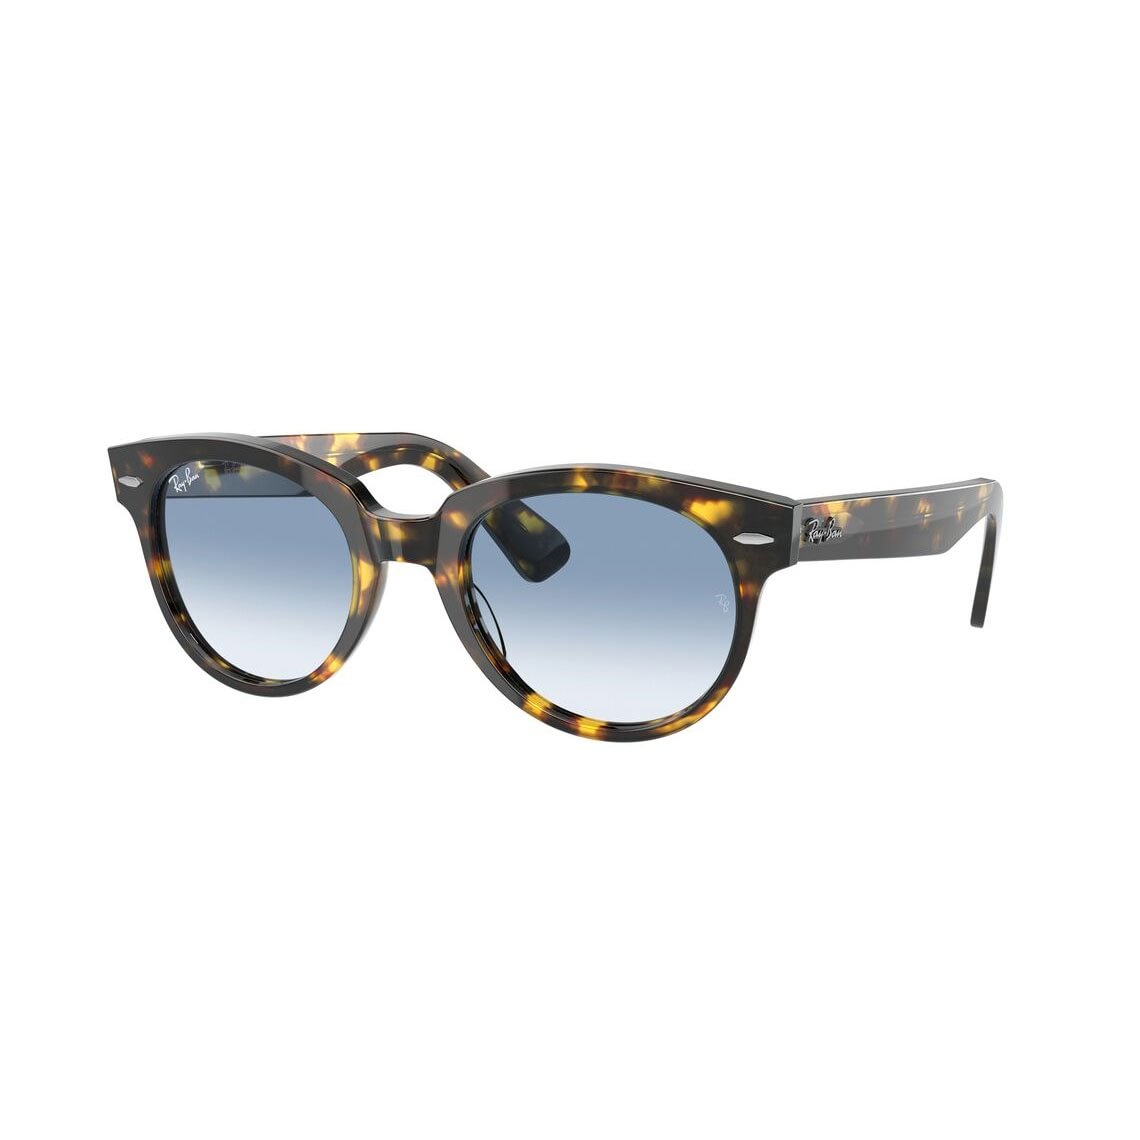 Ray-Ban Orion RB2199 13323F 5222